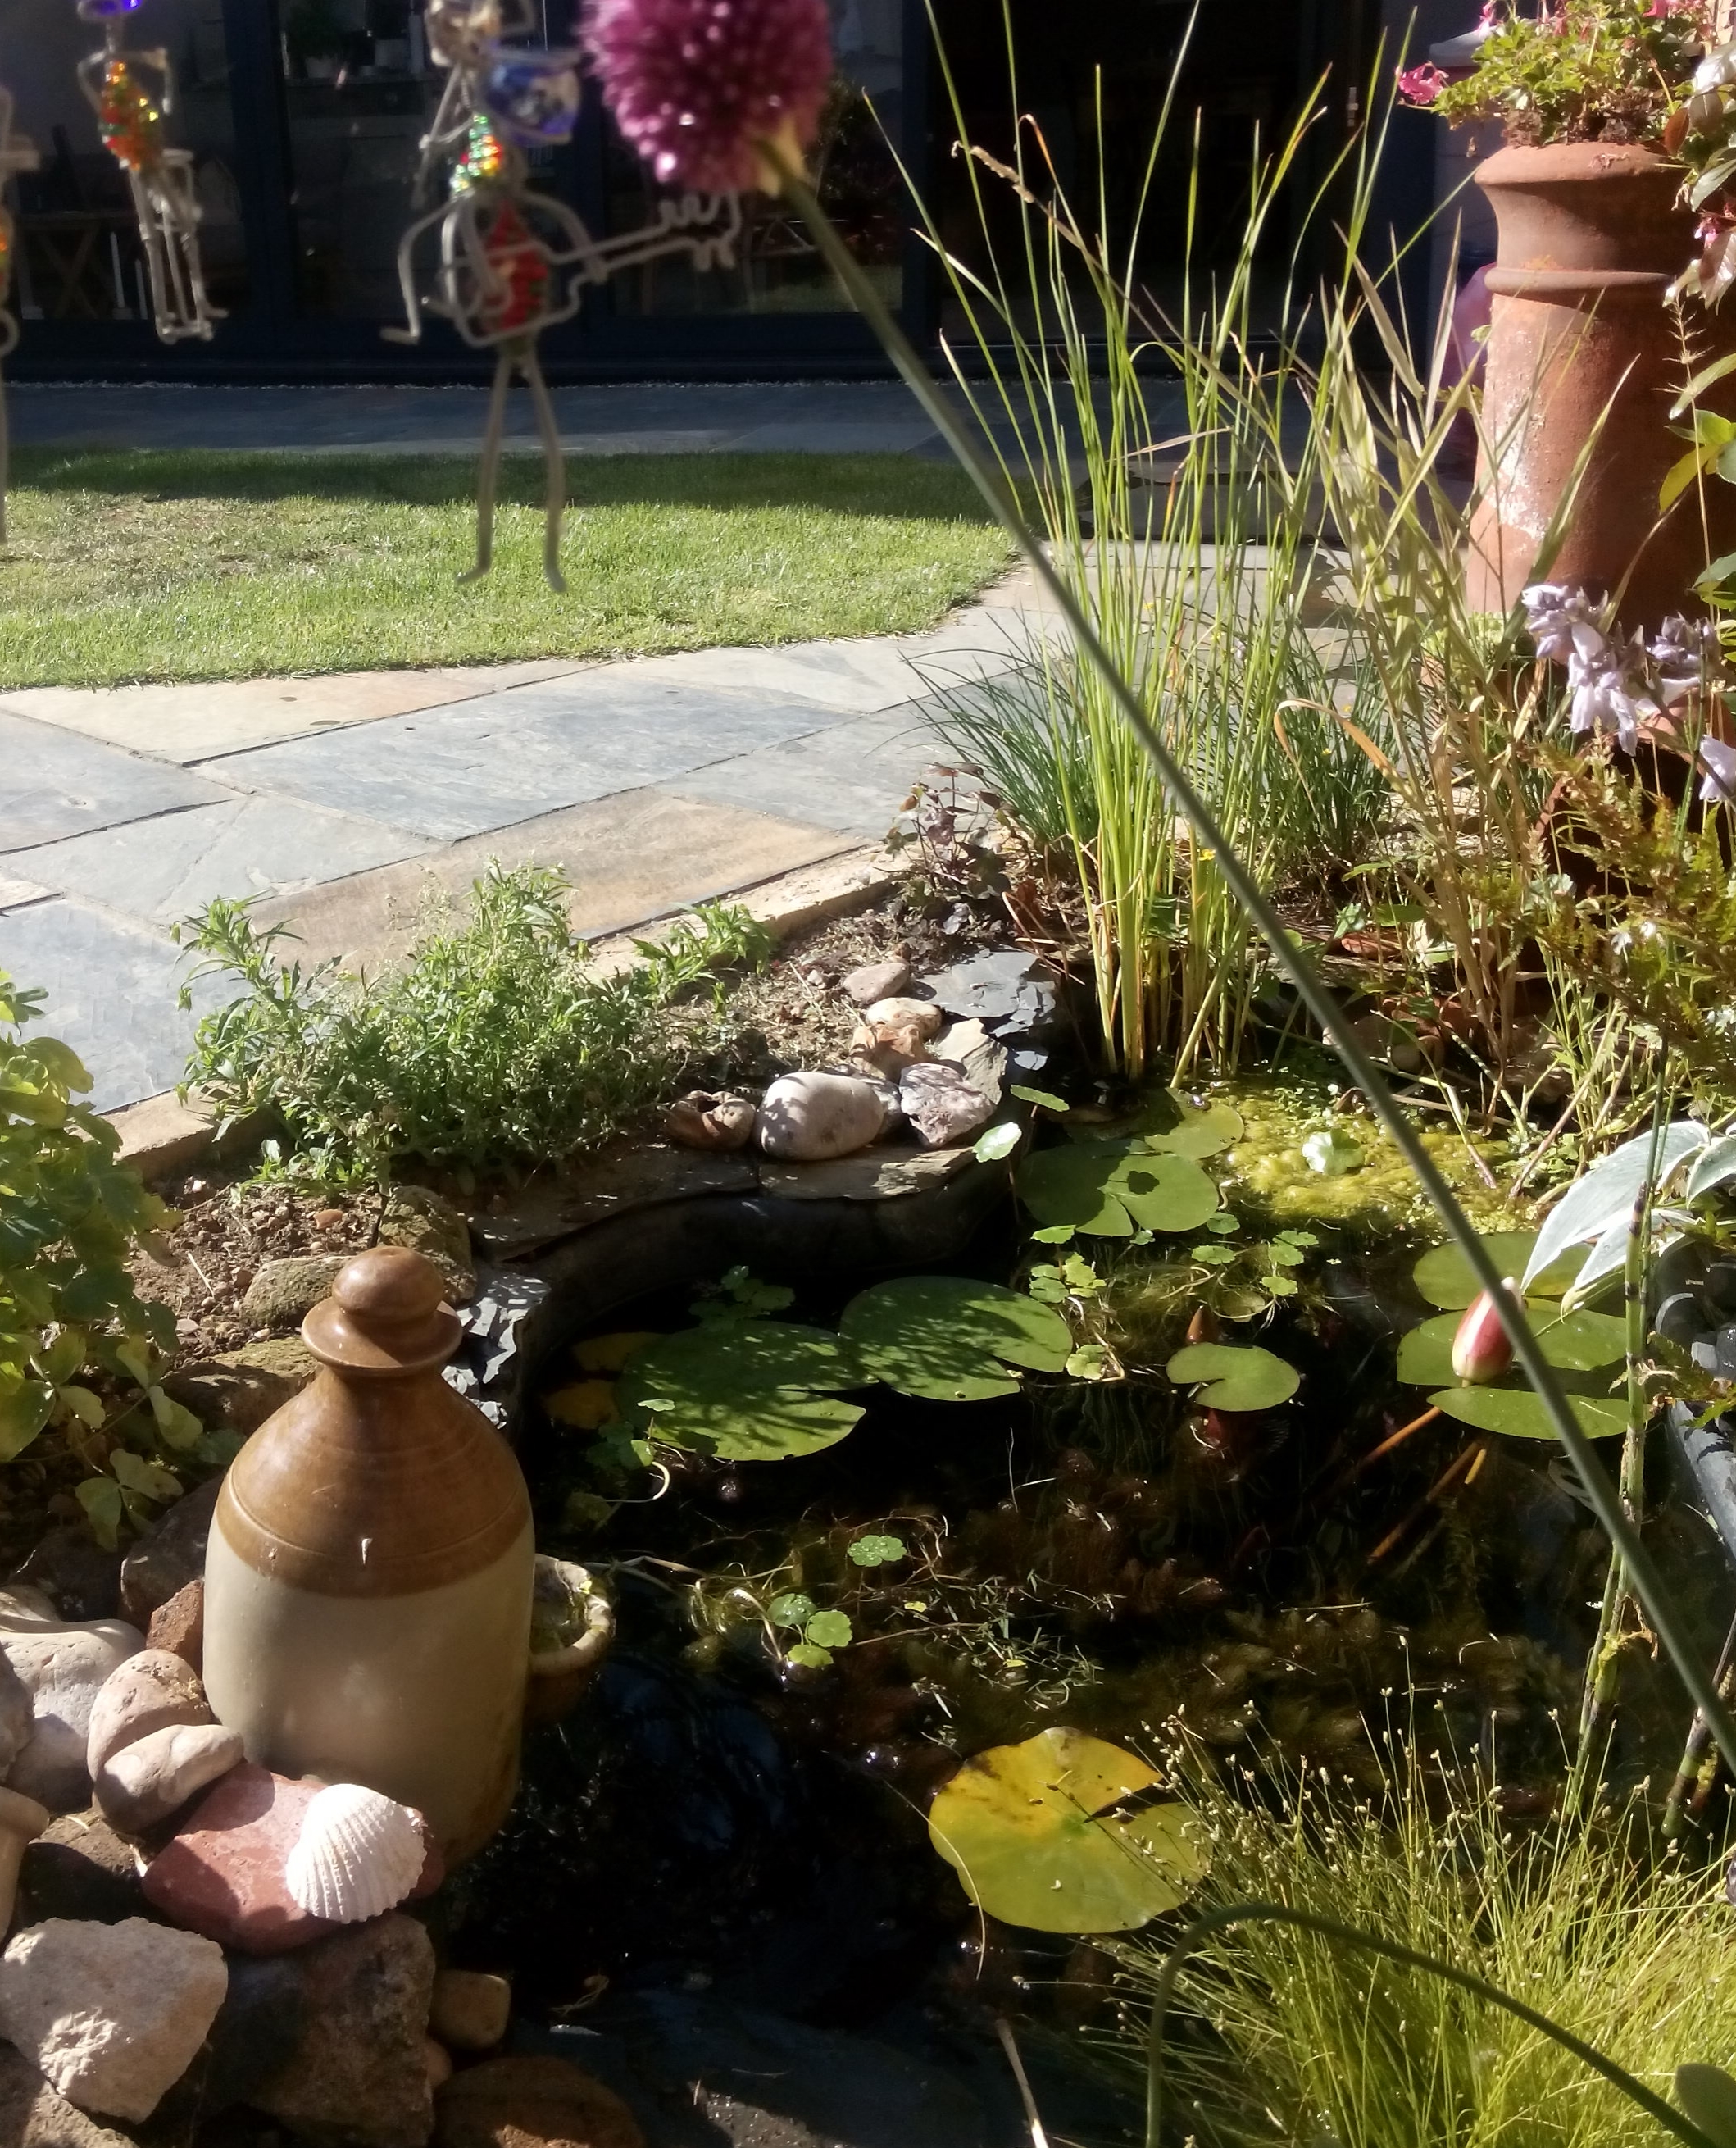 High summer in my parents garden: all slate,grass, water, music men and plants